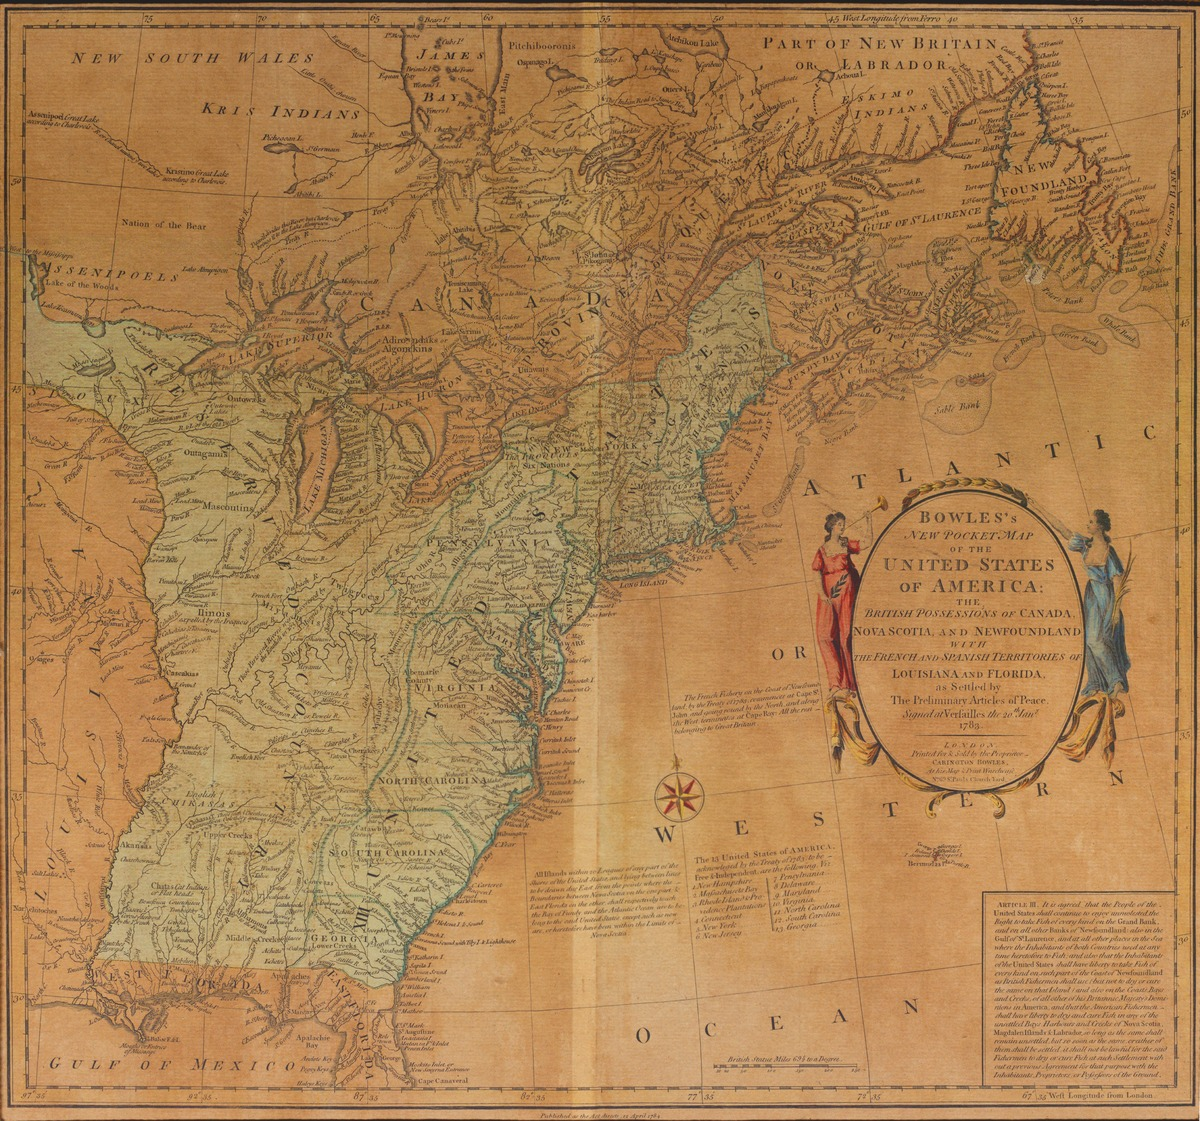 Bowles's New Pocket Map of the United States of America; the British Possessions of Canada, Nova Scotia, and Newfoundland with the French and Spanish Territories of Louisiana and Florida . . . 1783. London.